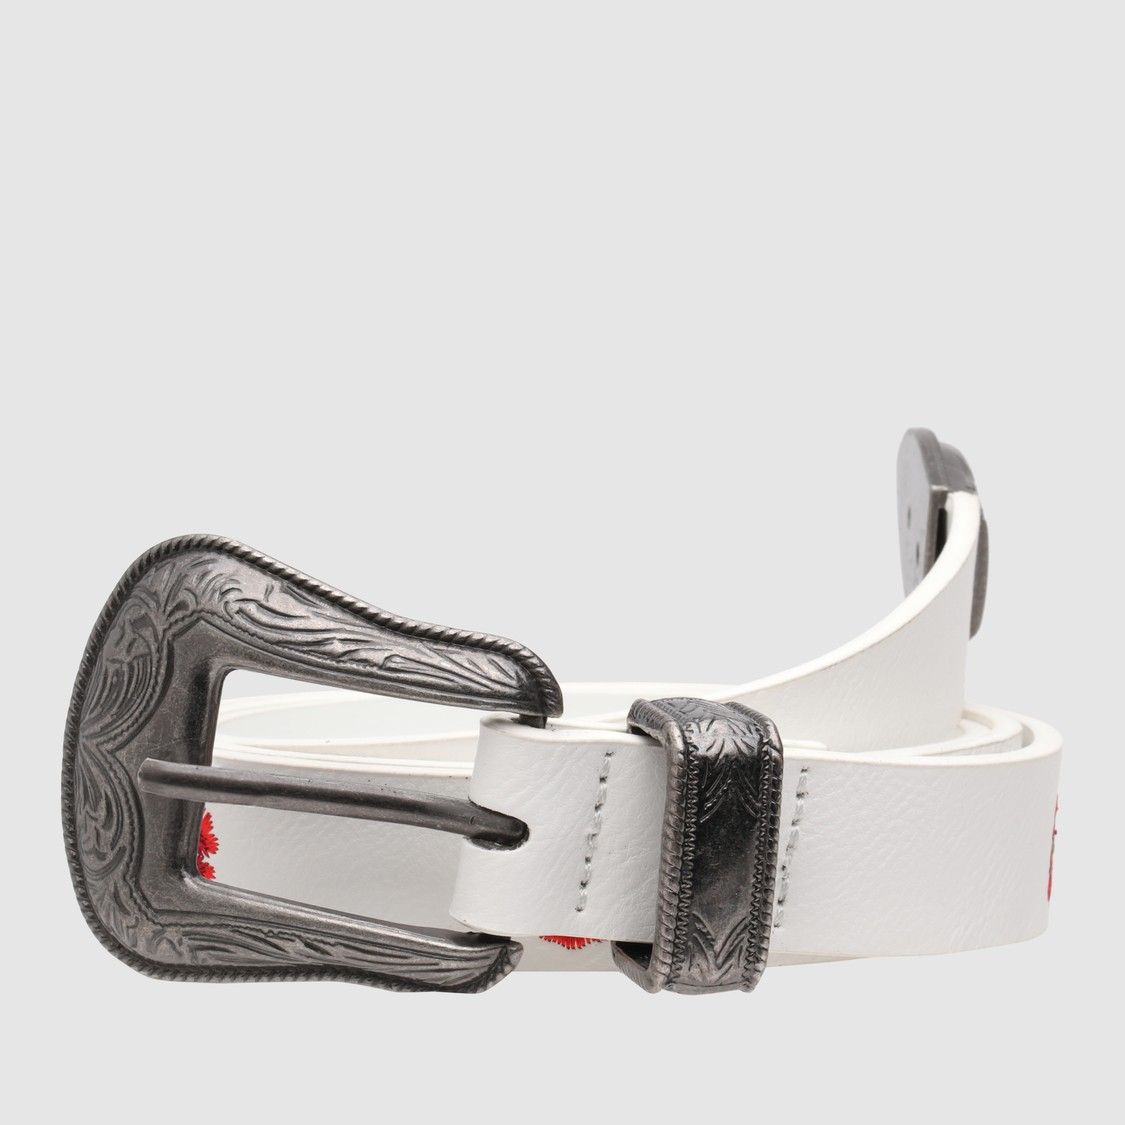 Embroidered Belt with Pin Buckle Closure